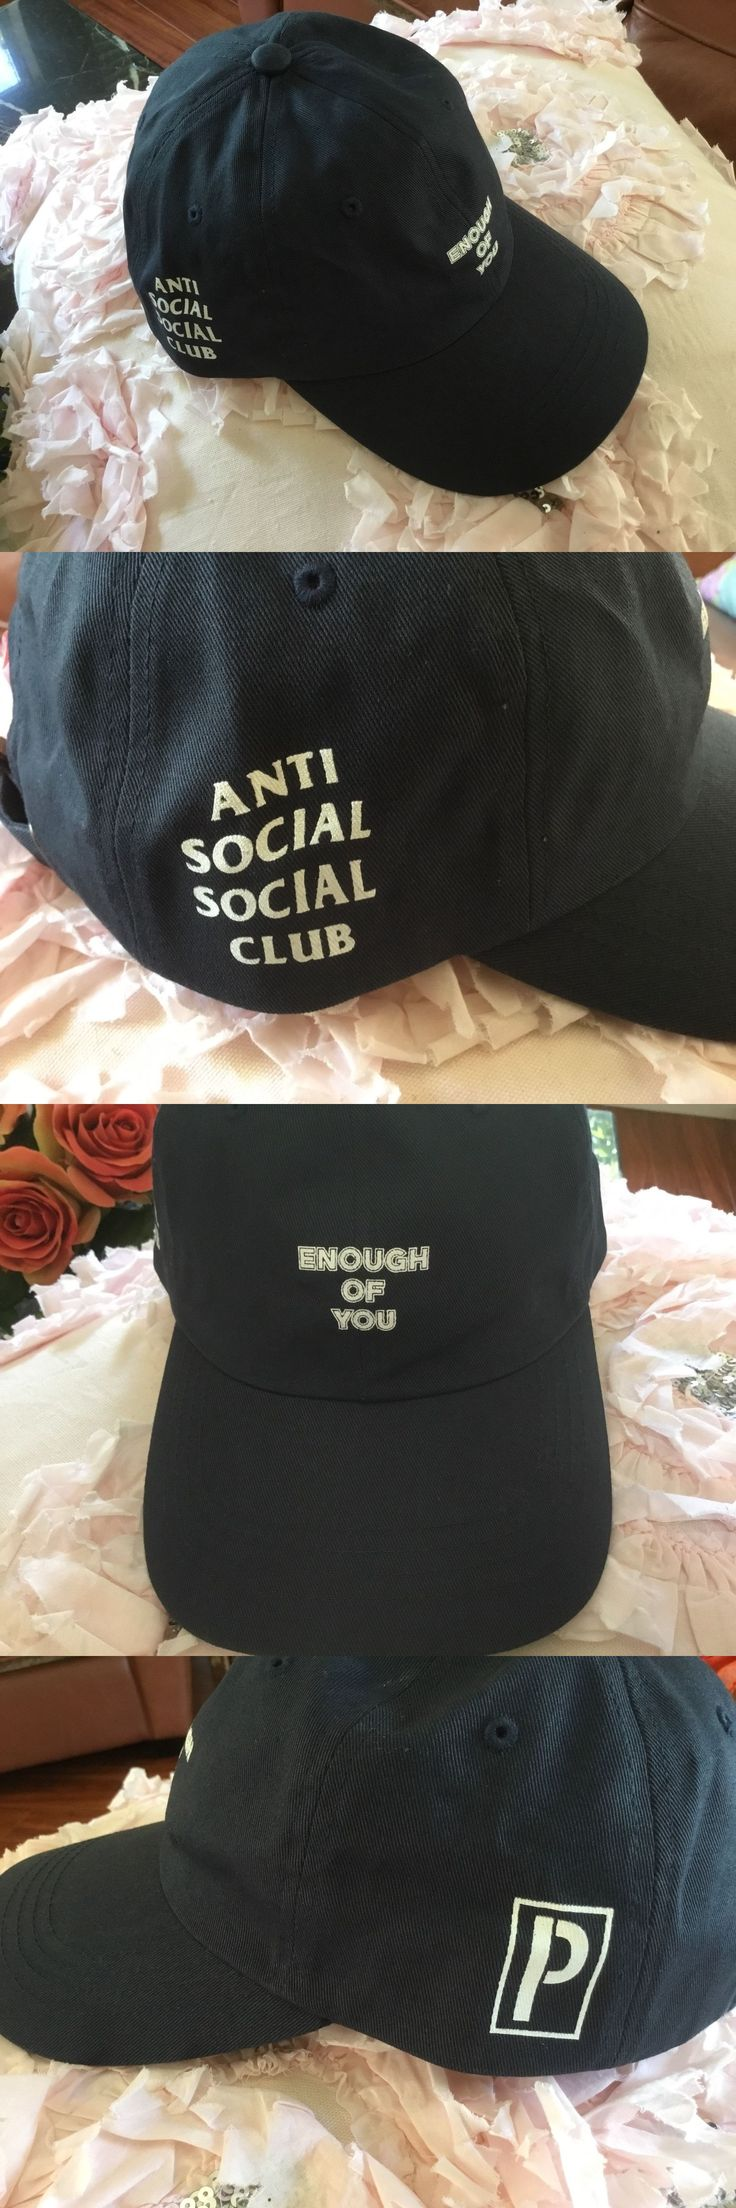 Hats 163543: New Anti Social Club Enough Of You Limited Edition Hat,Nave Blue, Adjustable -> BUY IT NOW ONLY: $99.99 on eBay!